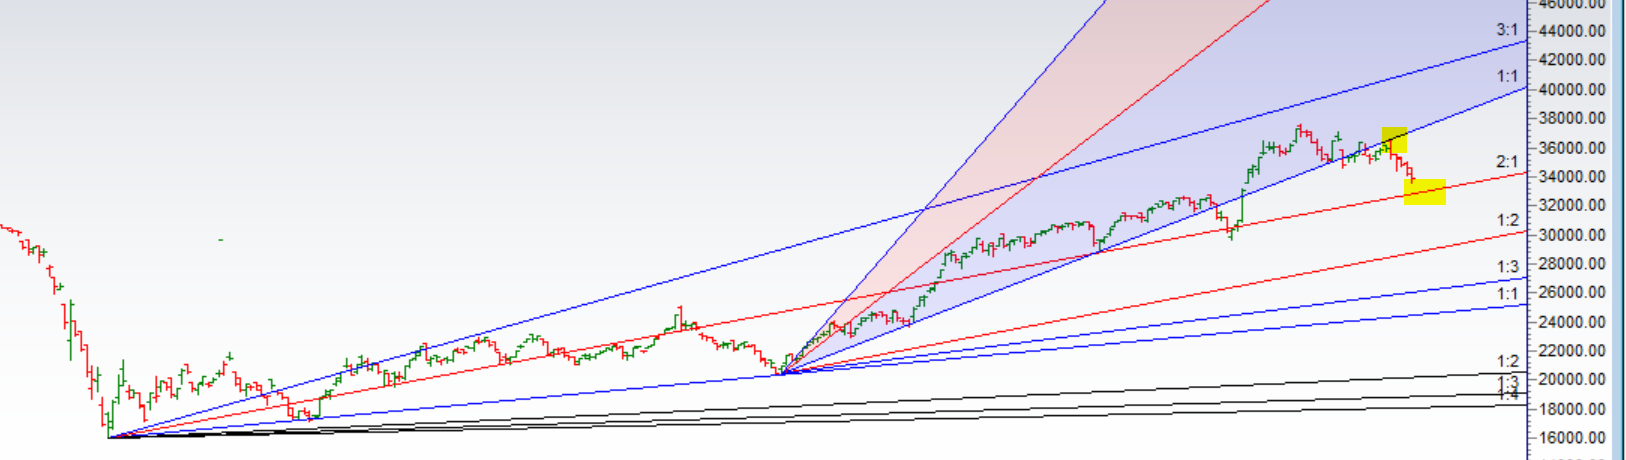 Nifty Bank Analysis for 19 March